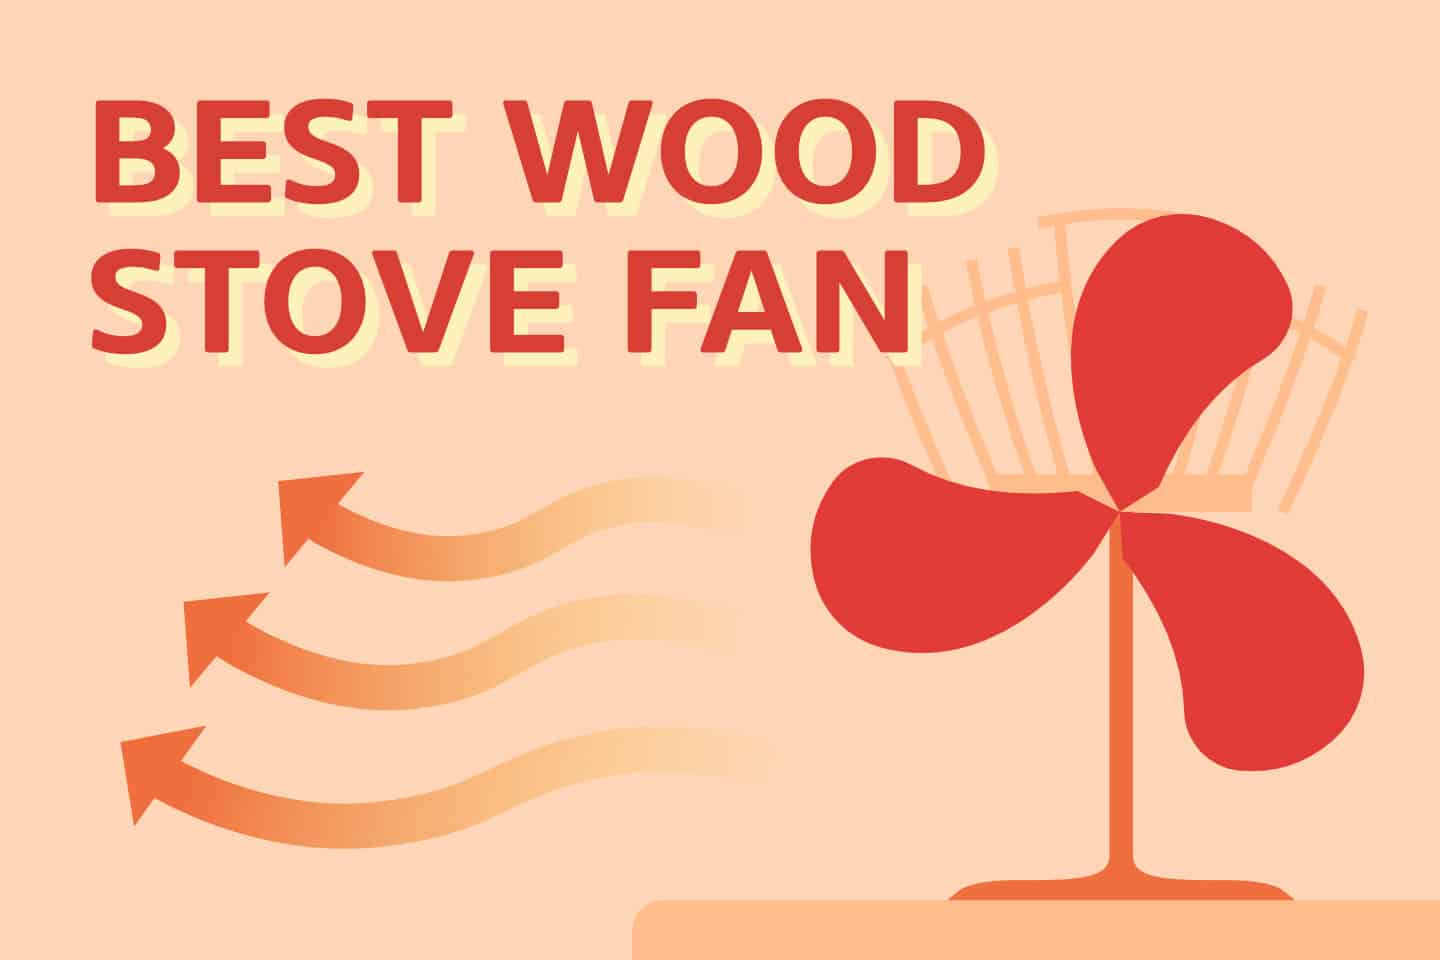 8 Best Wood Stove Fans (7 Things to Consider Before Buying)